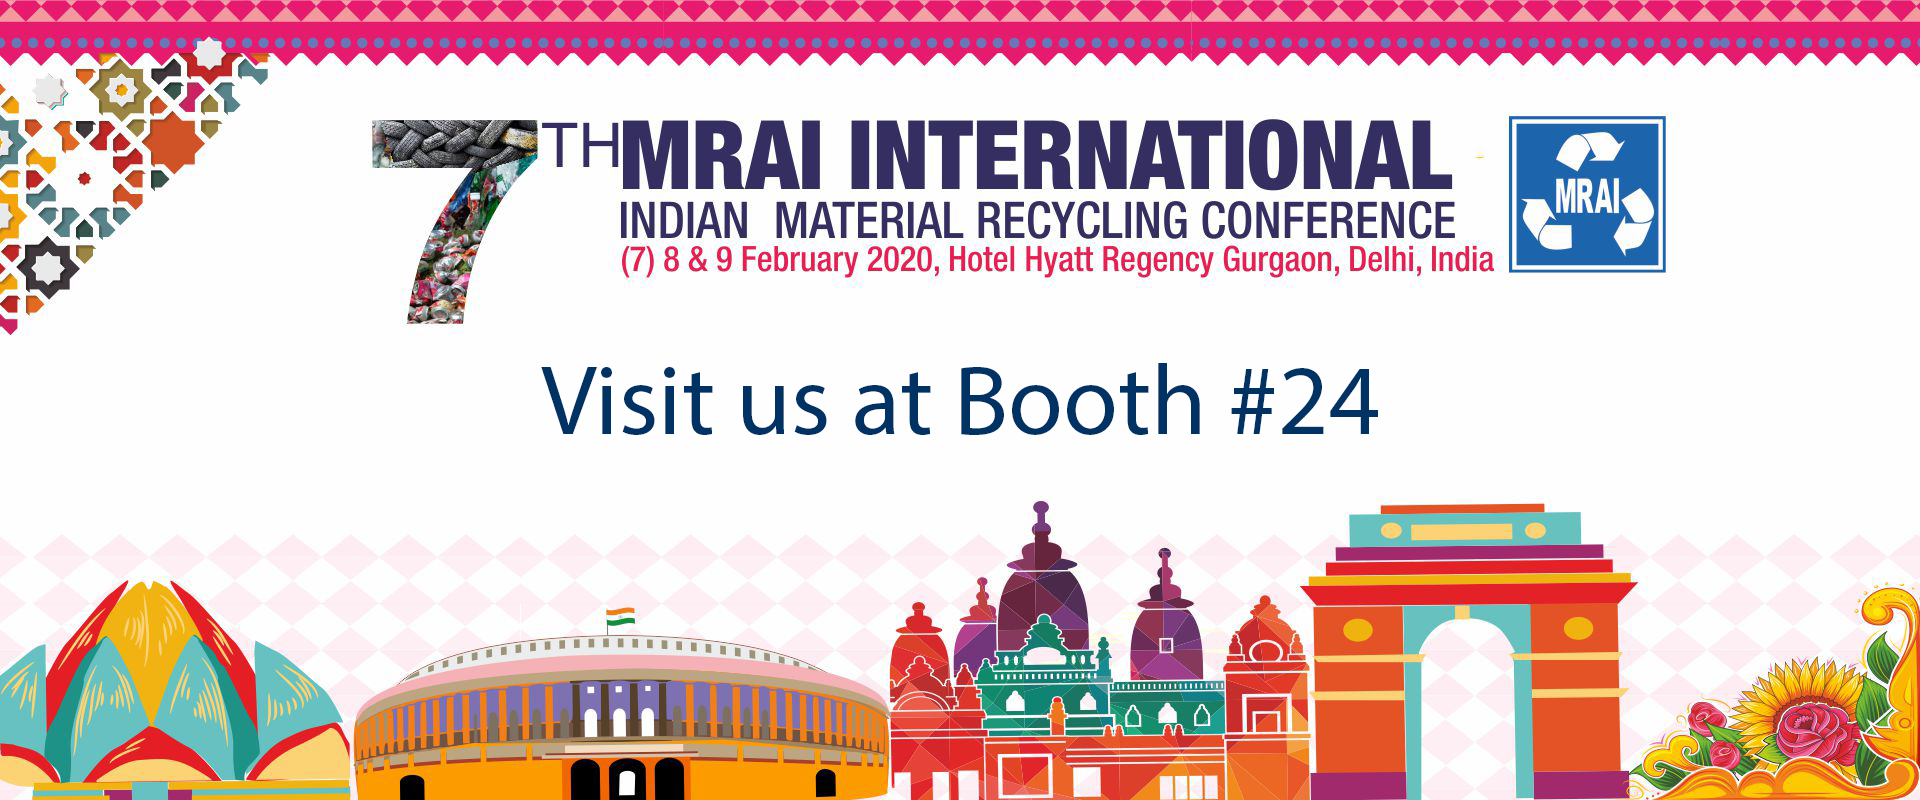 MRAI International Material Recycling Conference (February 7-9, 2020)